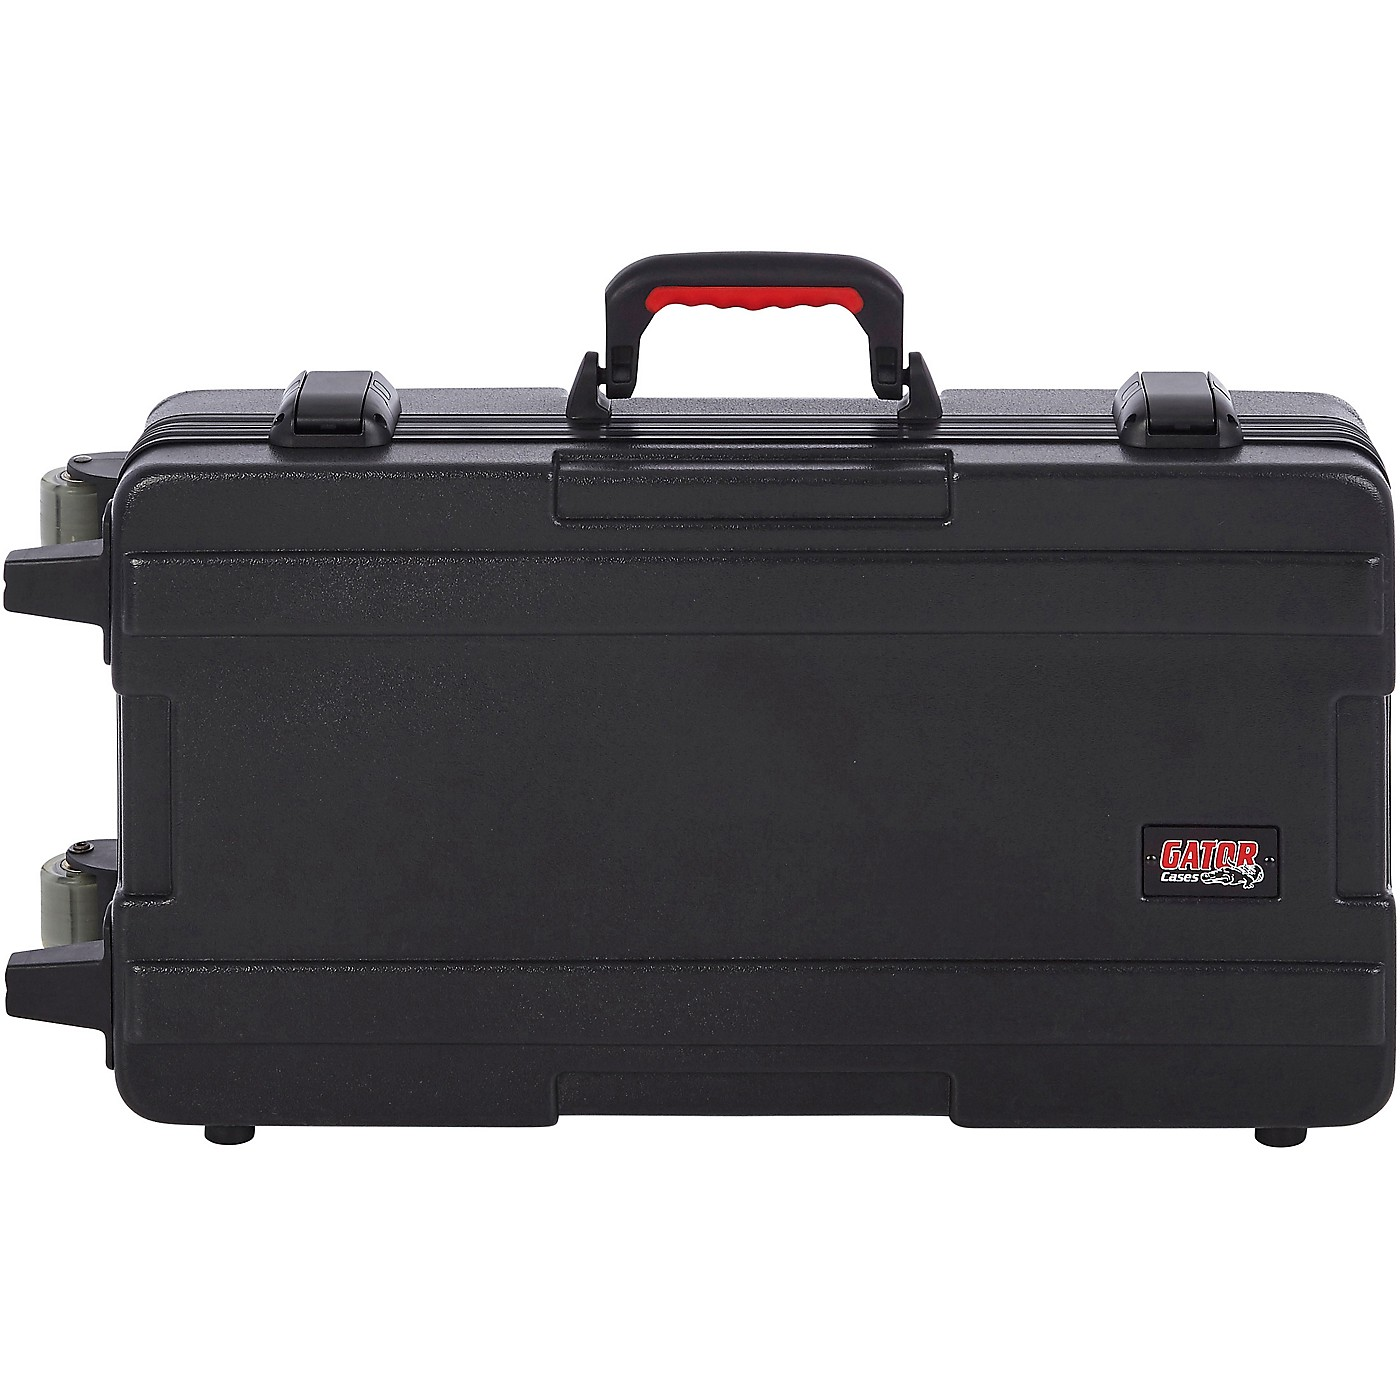 Gator Line 6 Helix Floor Case With Wheels thumbnail